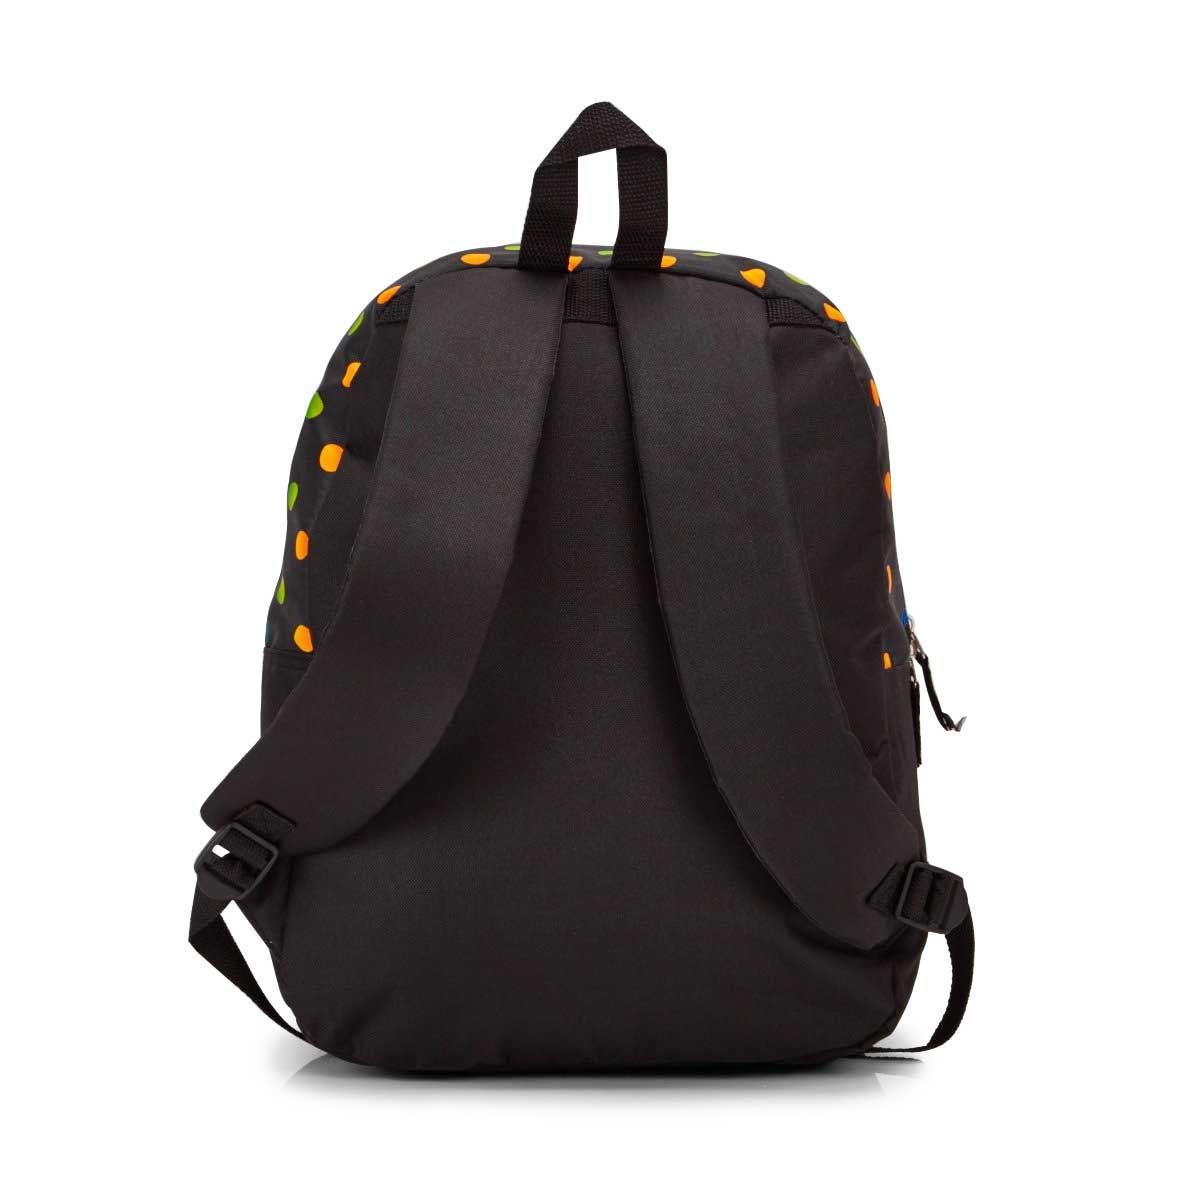 Lds Roots73 blk mlti polka dots backpack